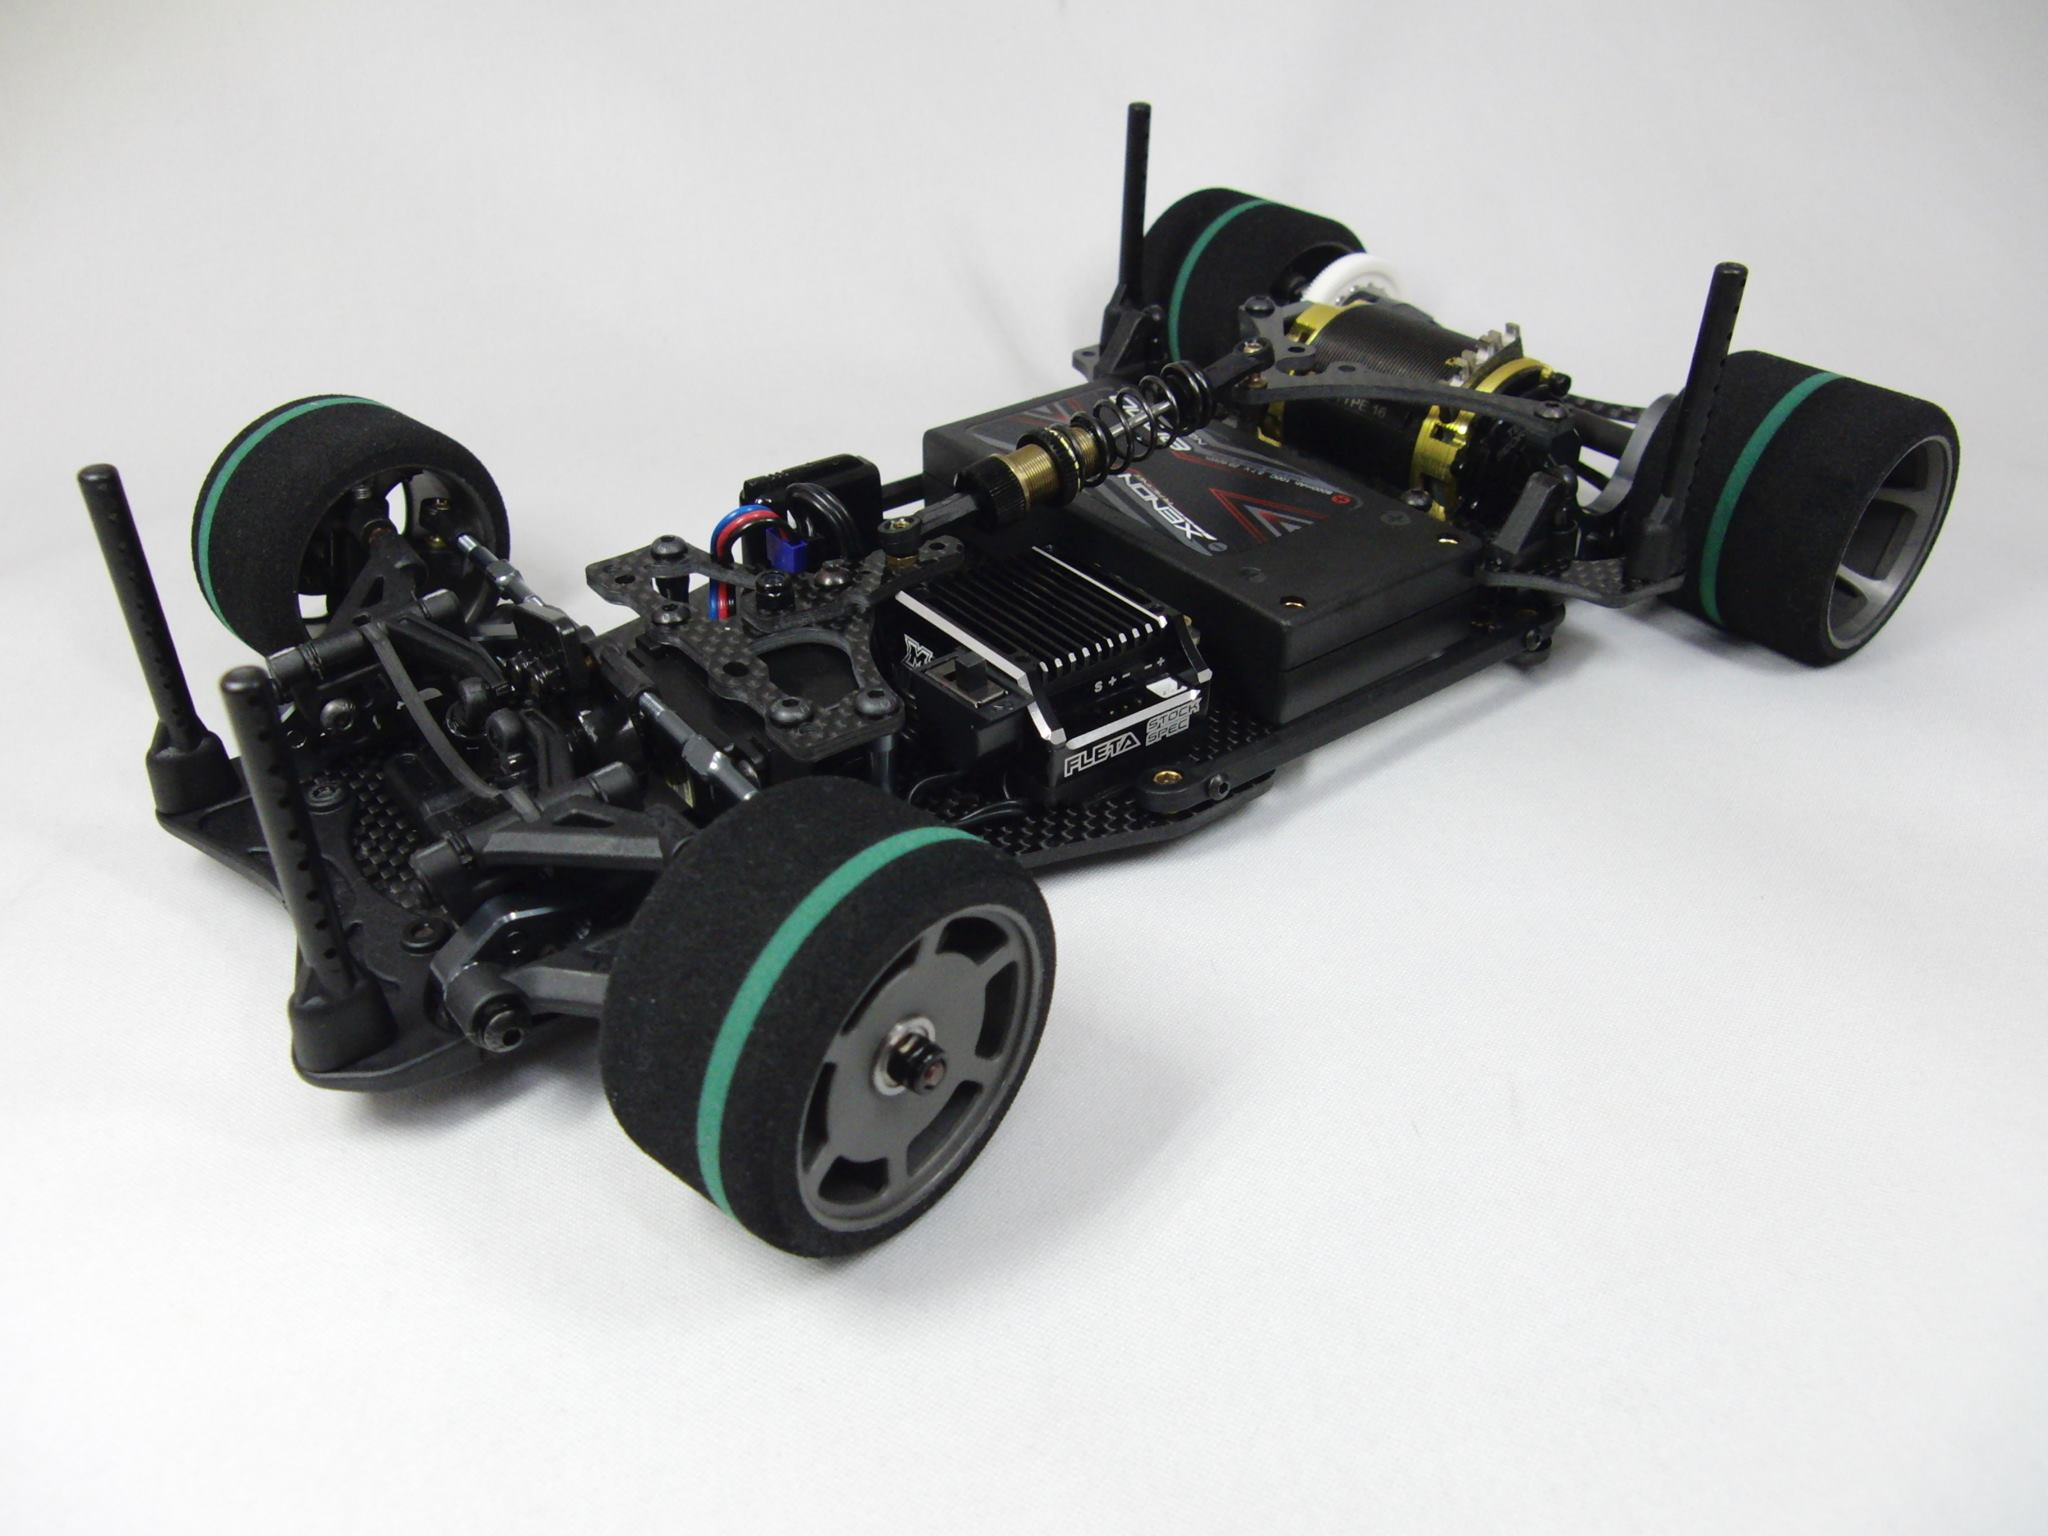 Destiny VD-12 1/12 Scale Competition Racing